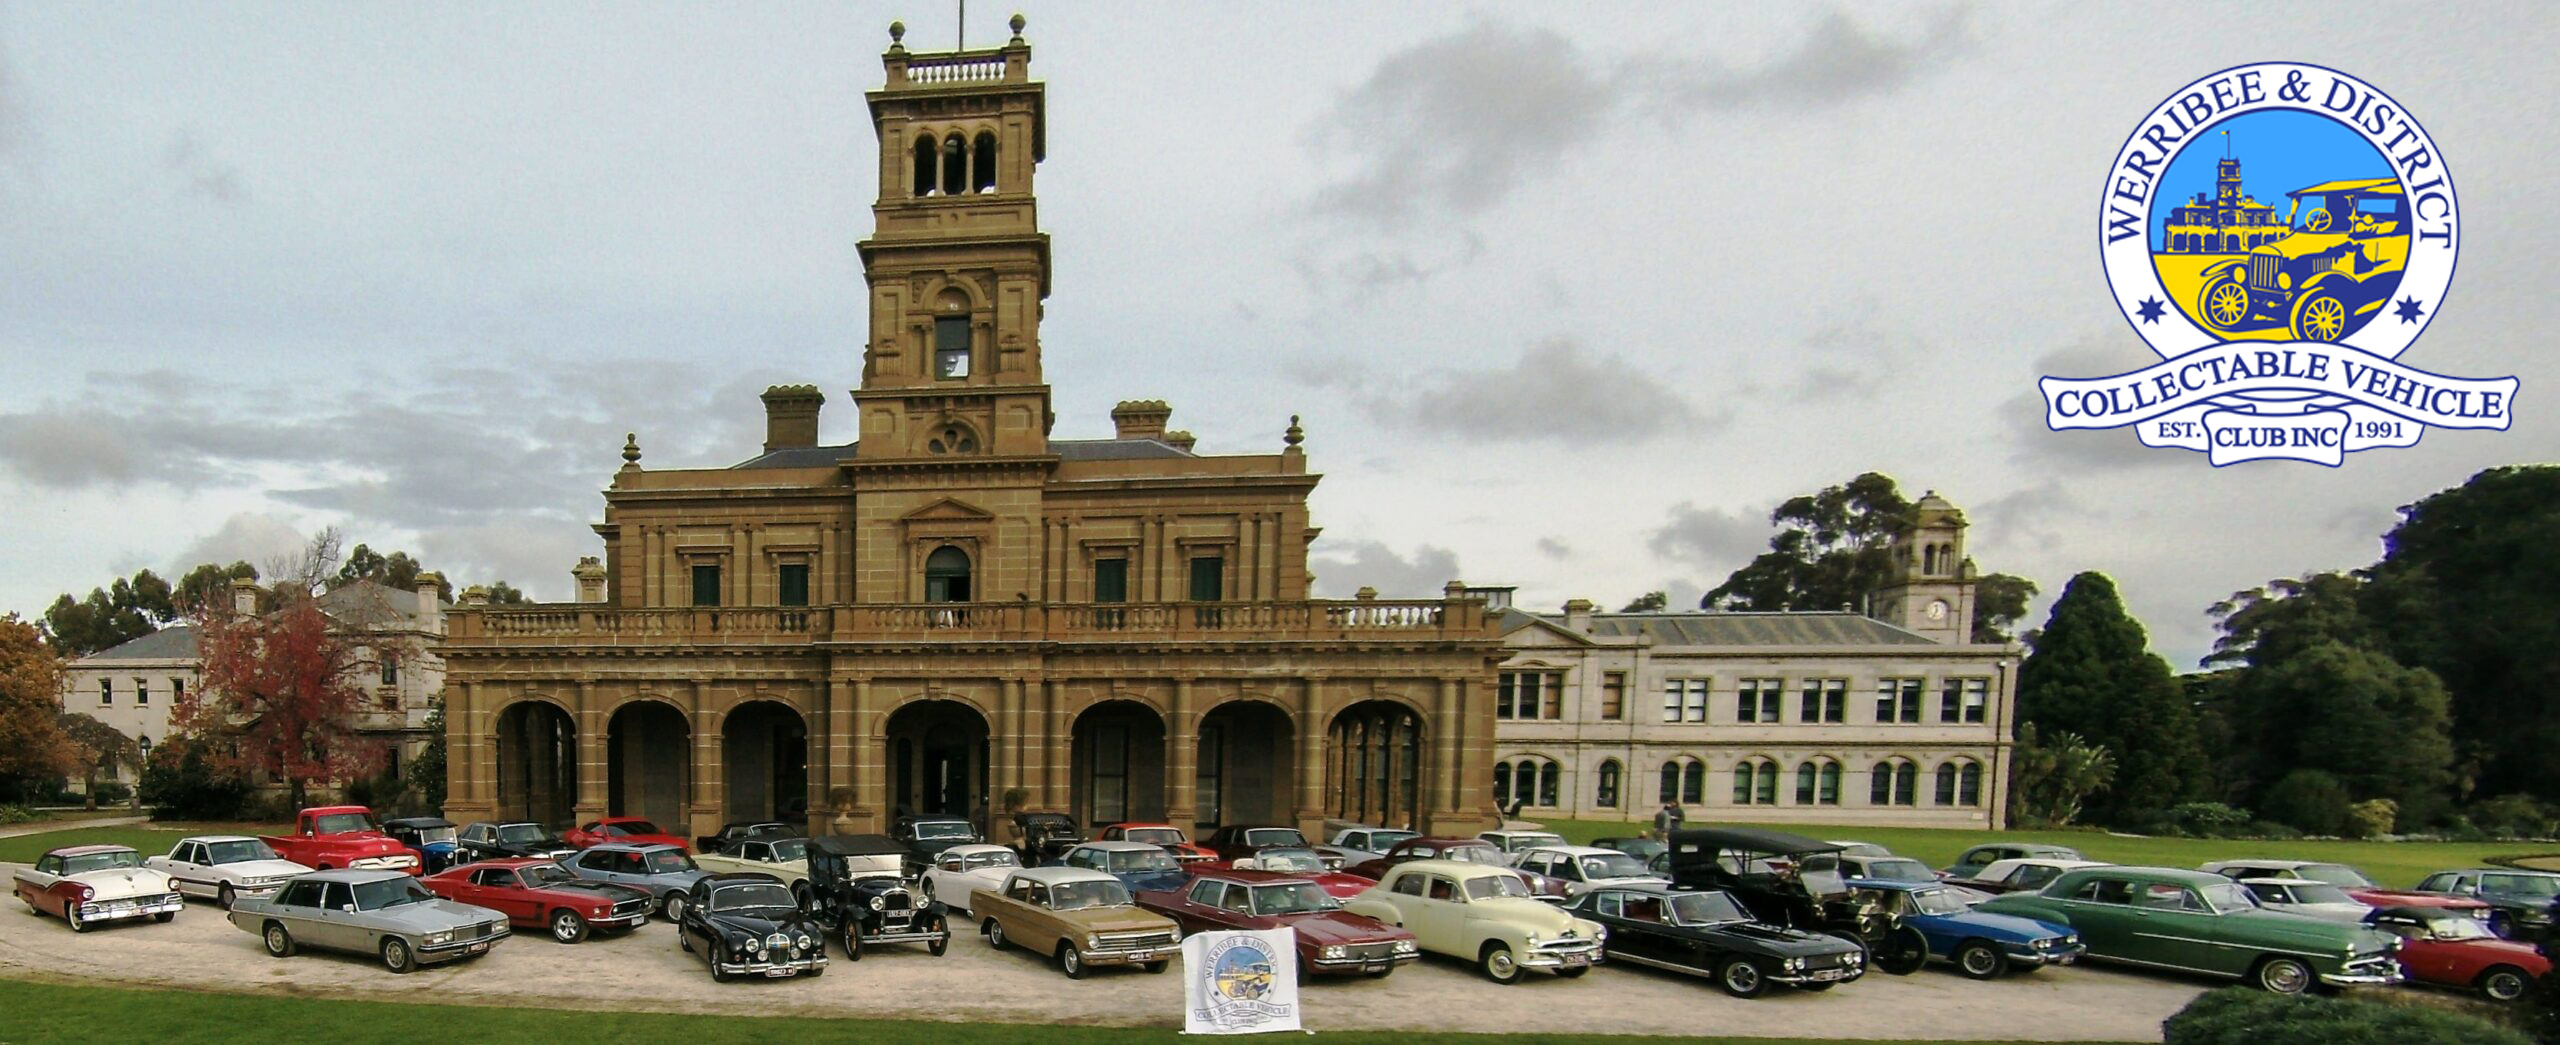 Werribee & District Collectable Vehicle Club